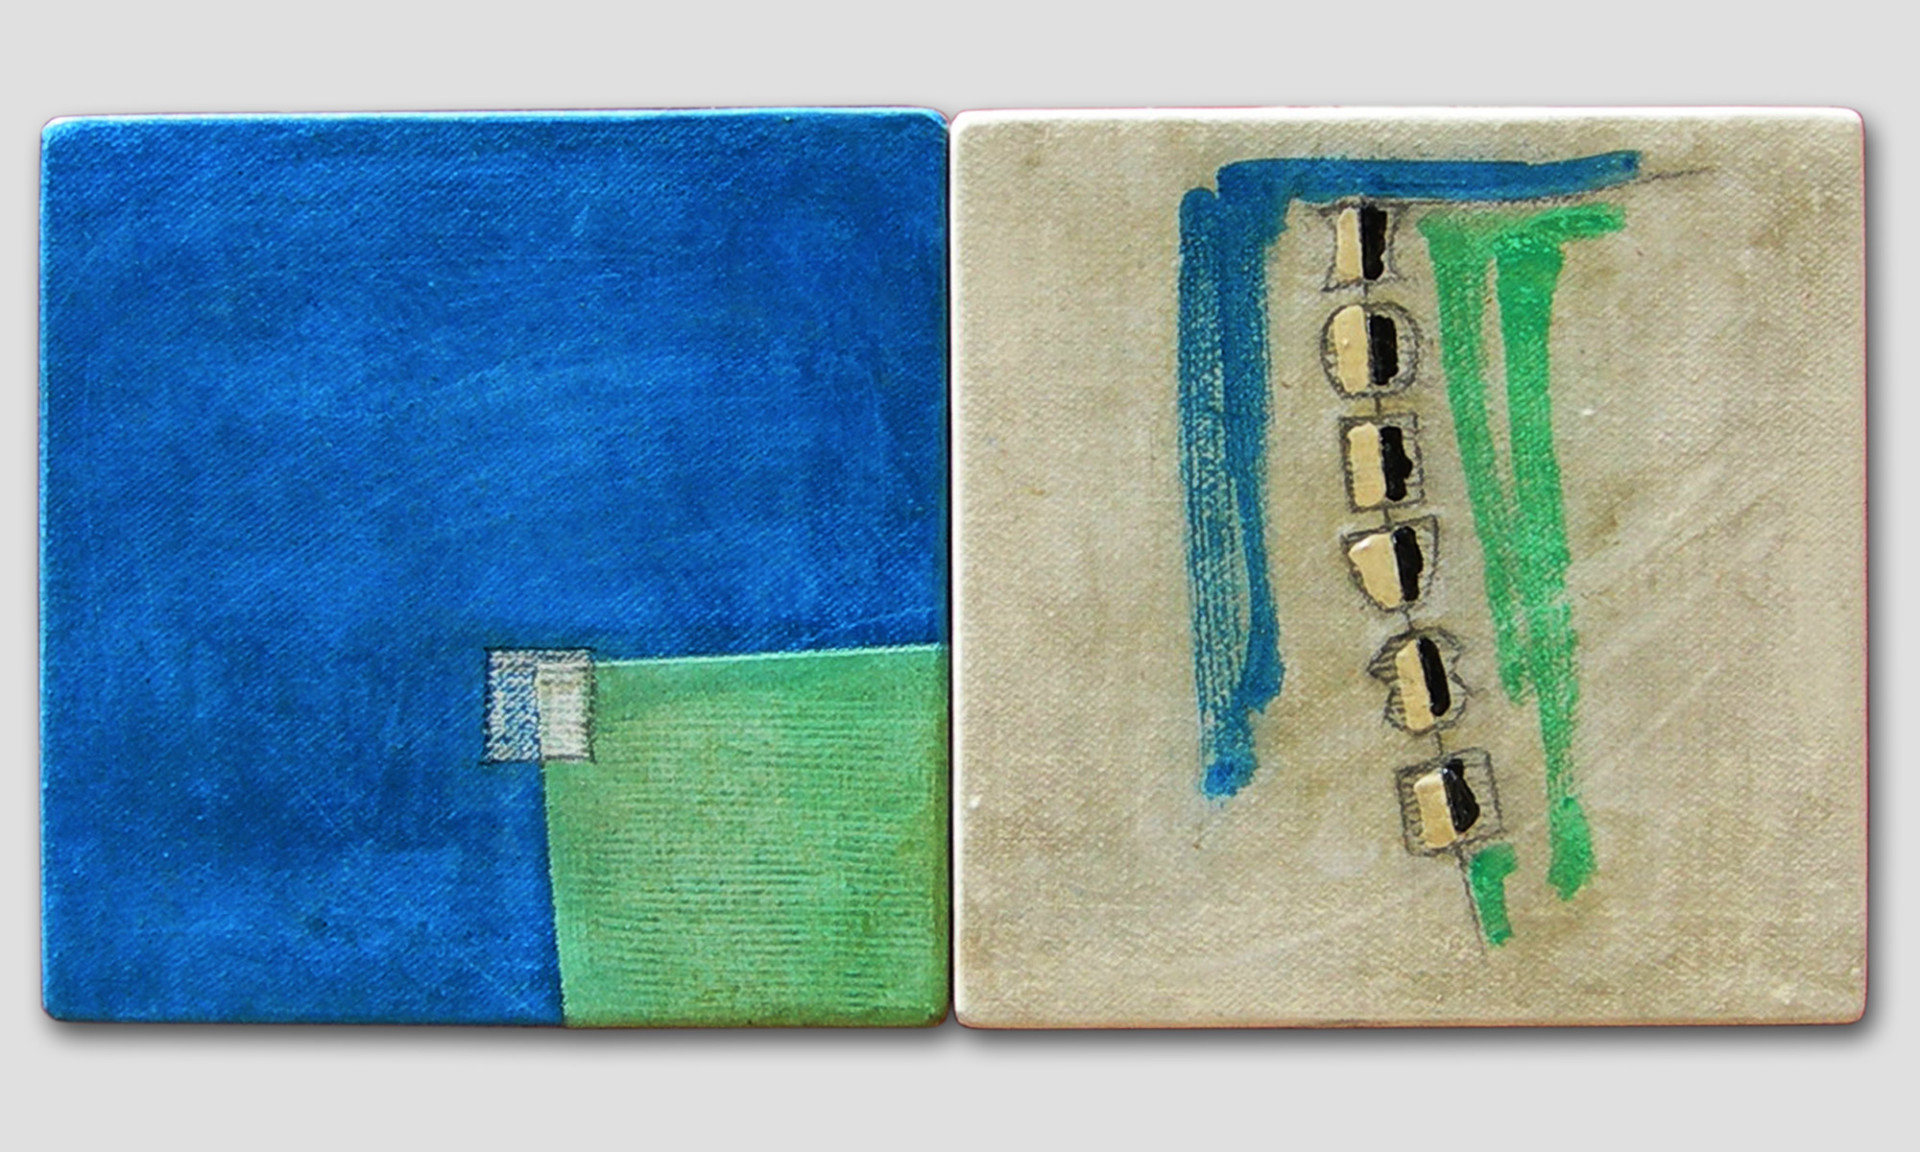 039-REBIS (diptych)  -TOTEM bidimensionale -2011 .mixed media on canvas panel -30 x 60 cm.